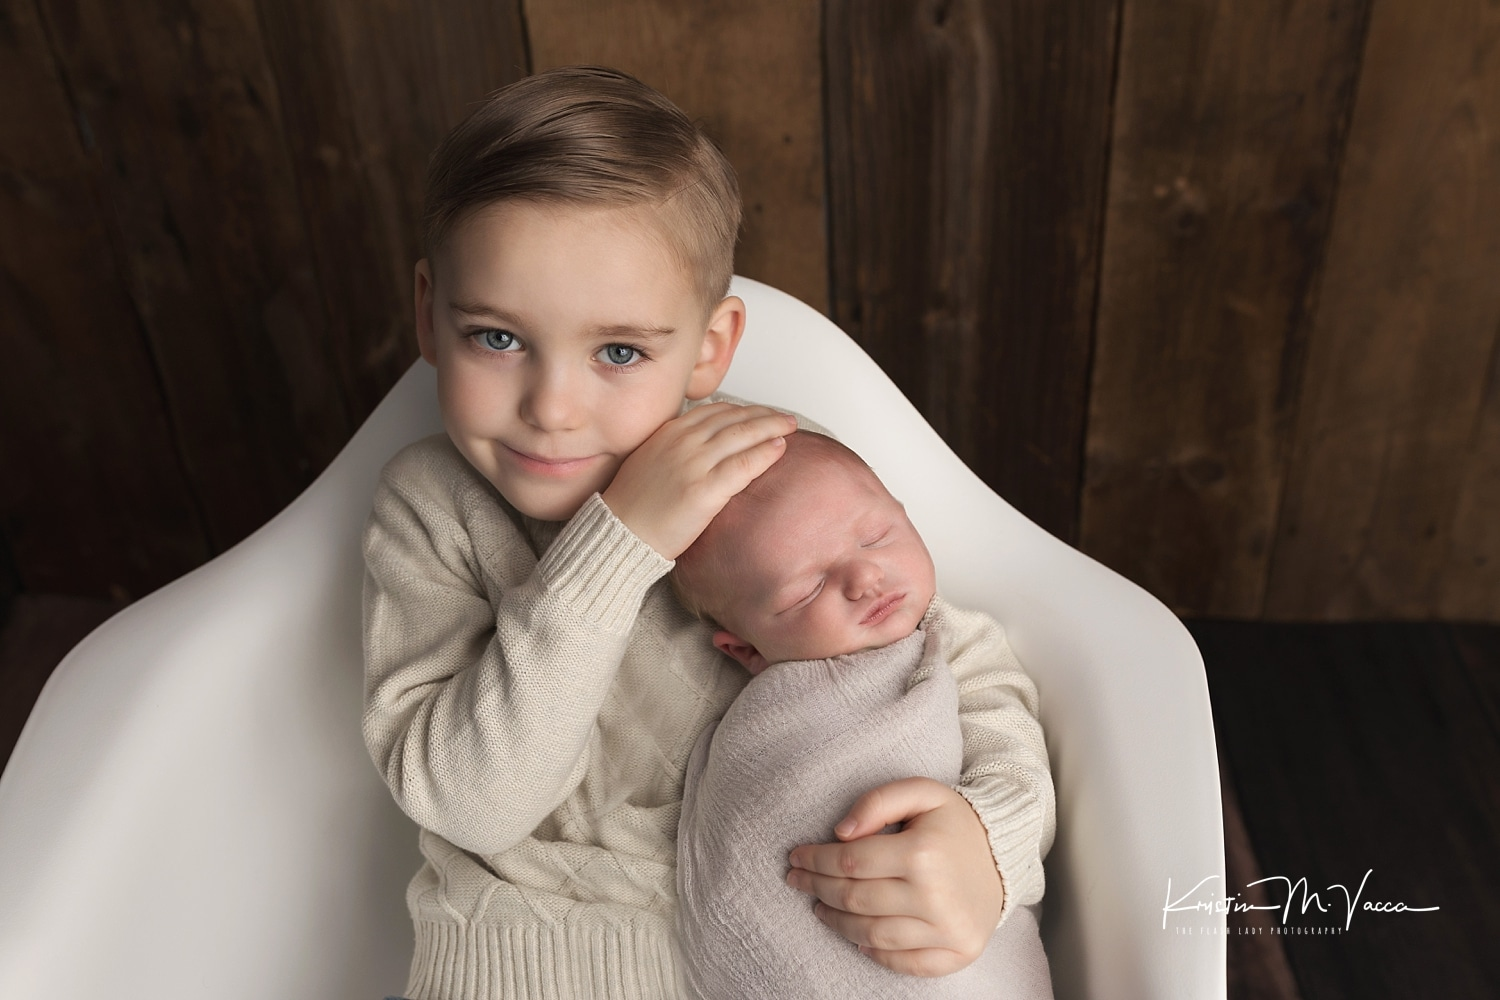 Enjoy some of the photos from his wrapped newborn photography session below and dont forget newborn due dates are best booked in your 2nd trimester to